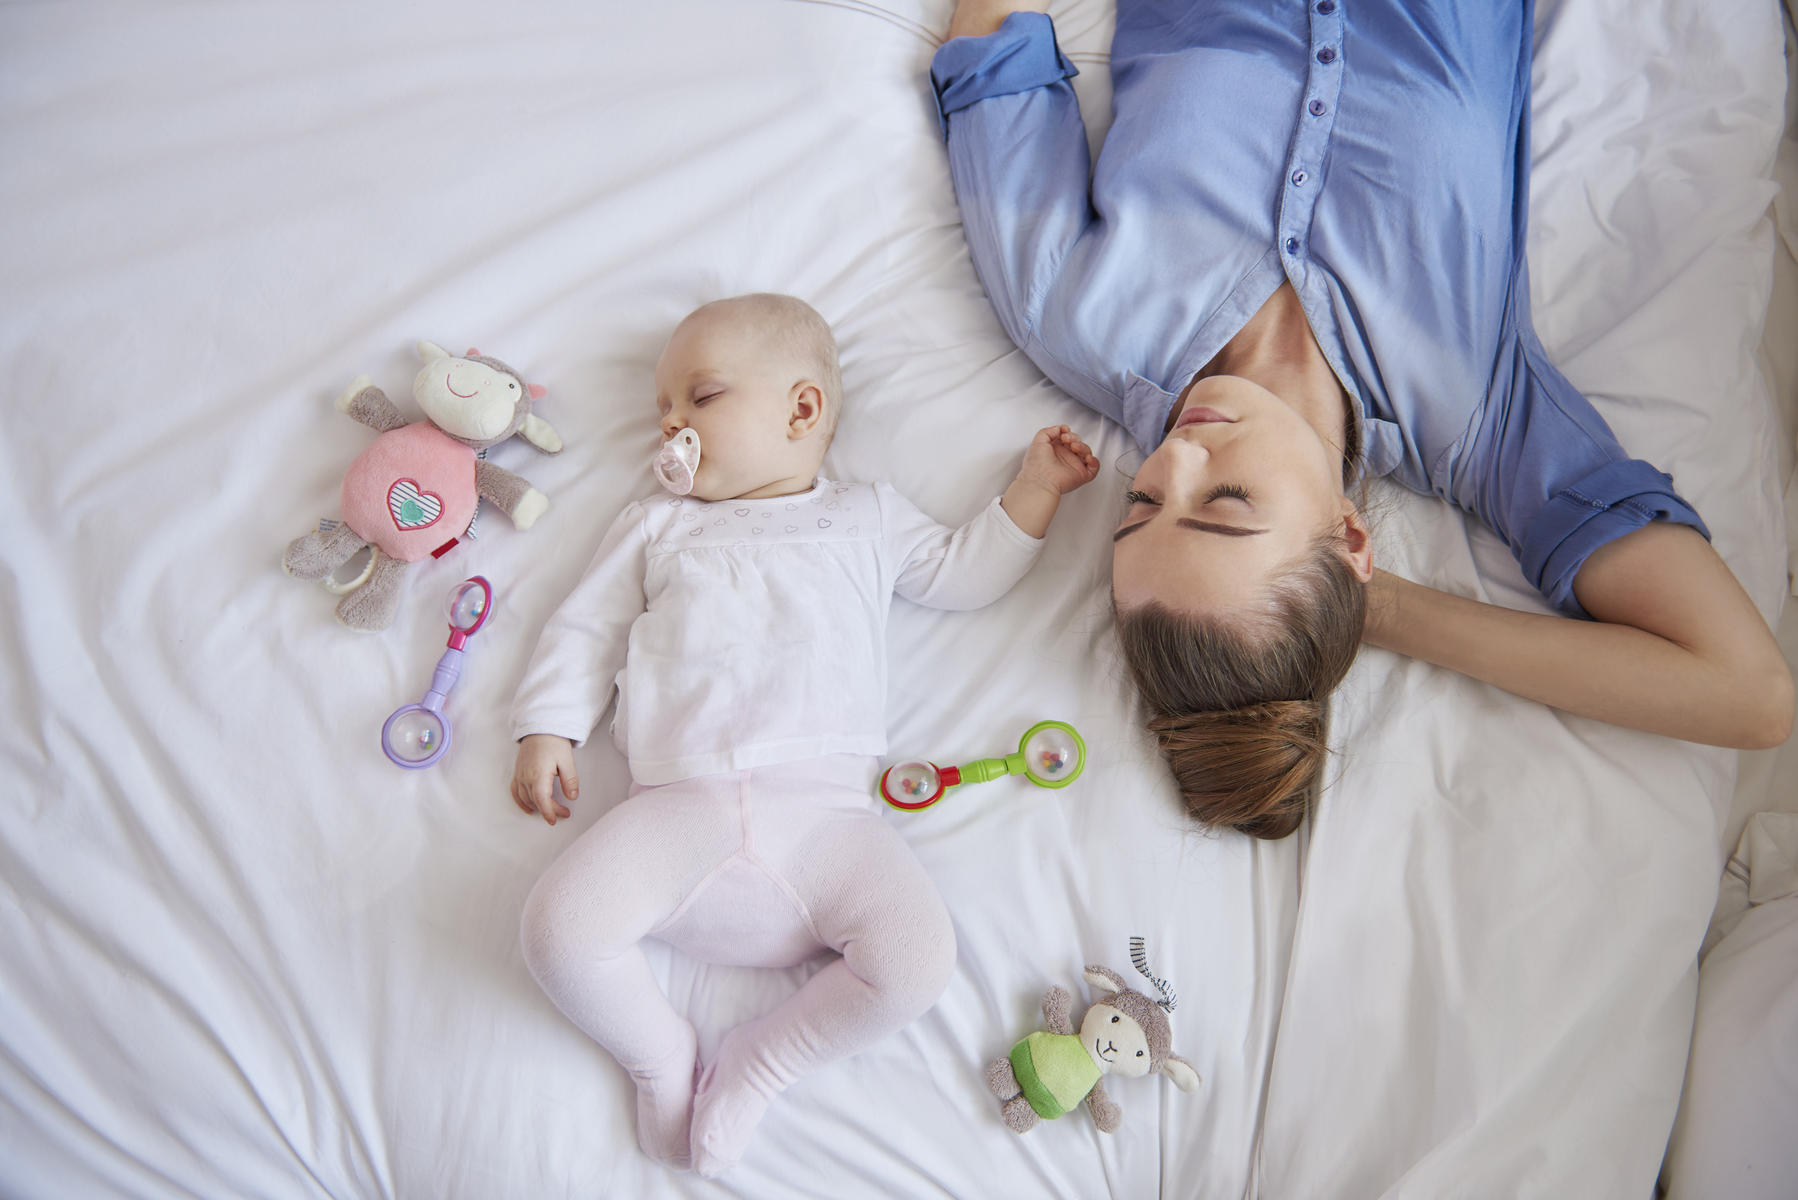 baby sleep problems solutions tips tricks parents sleep deprivation after baby